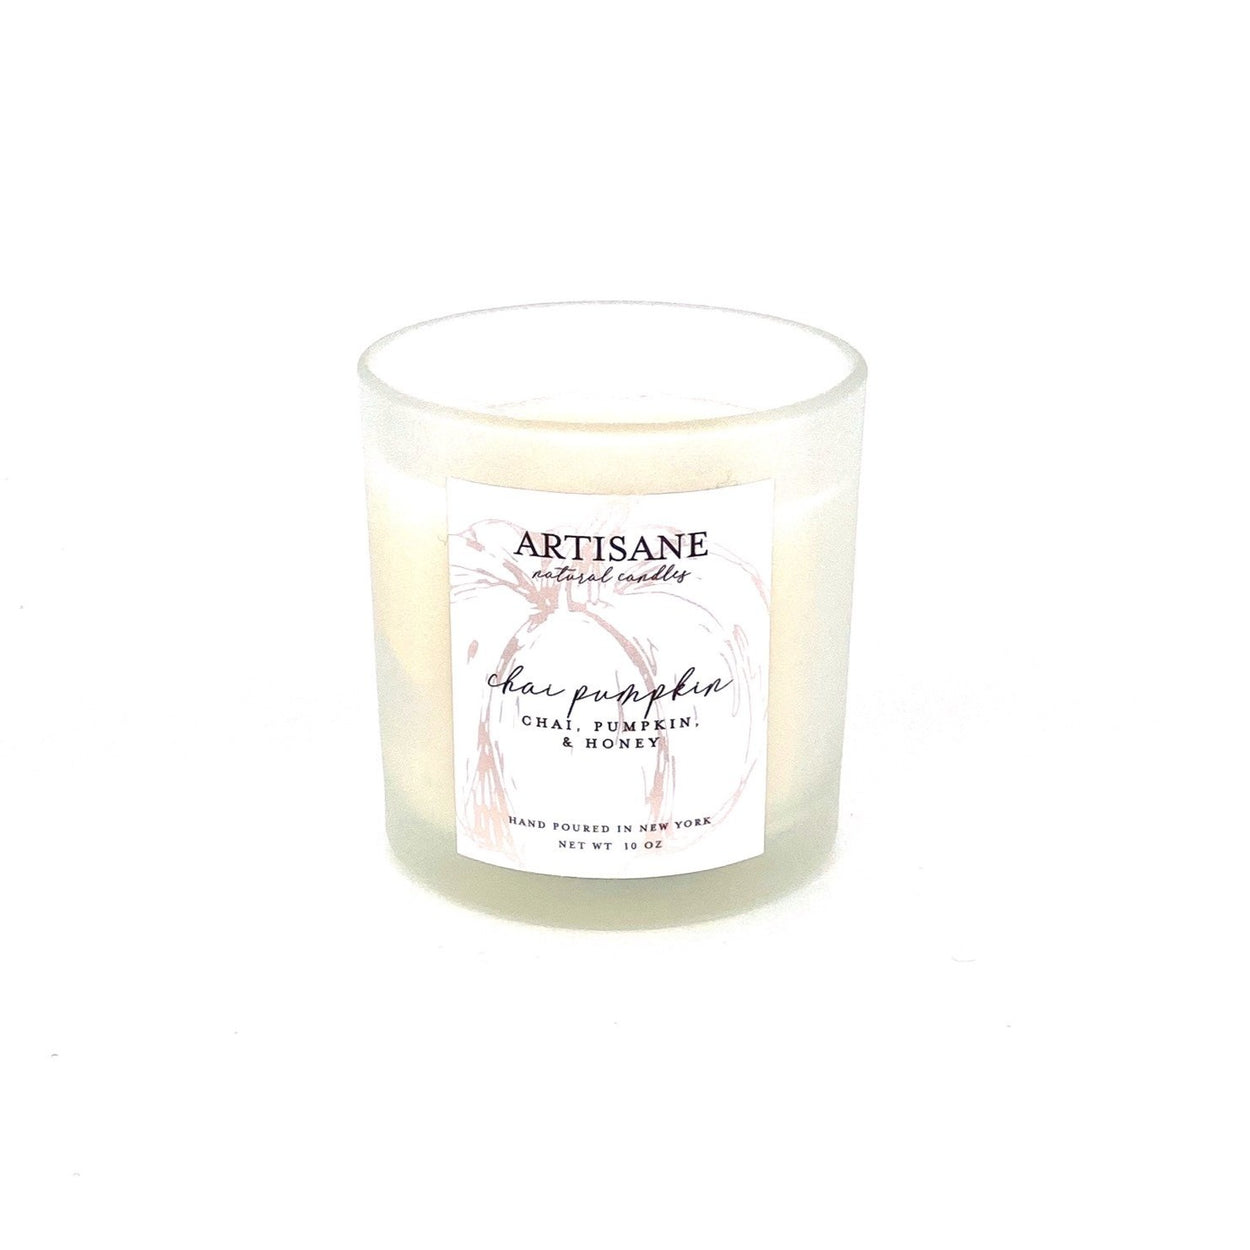 Chai Pumpkin Candle (chai, pumpkin, honey) - LIMITED EDITION